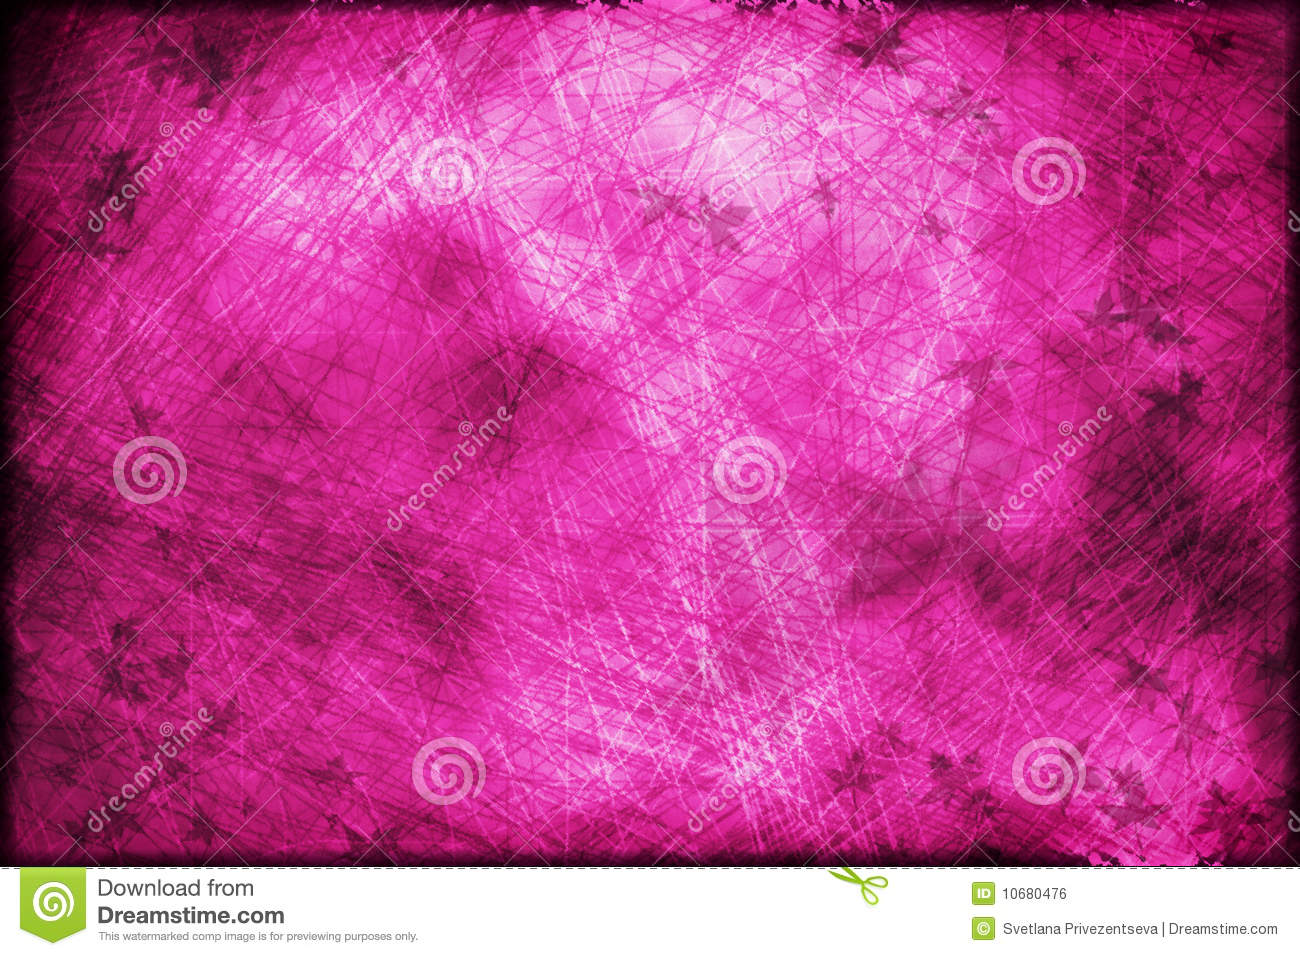 Purple Grunge Background Royalty Free Stock Image - Image: 10680476